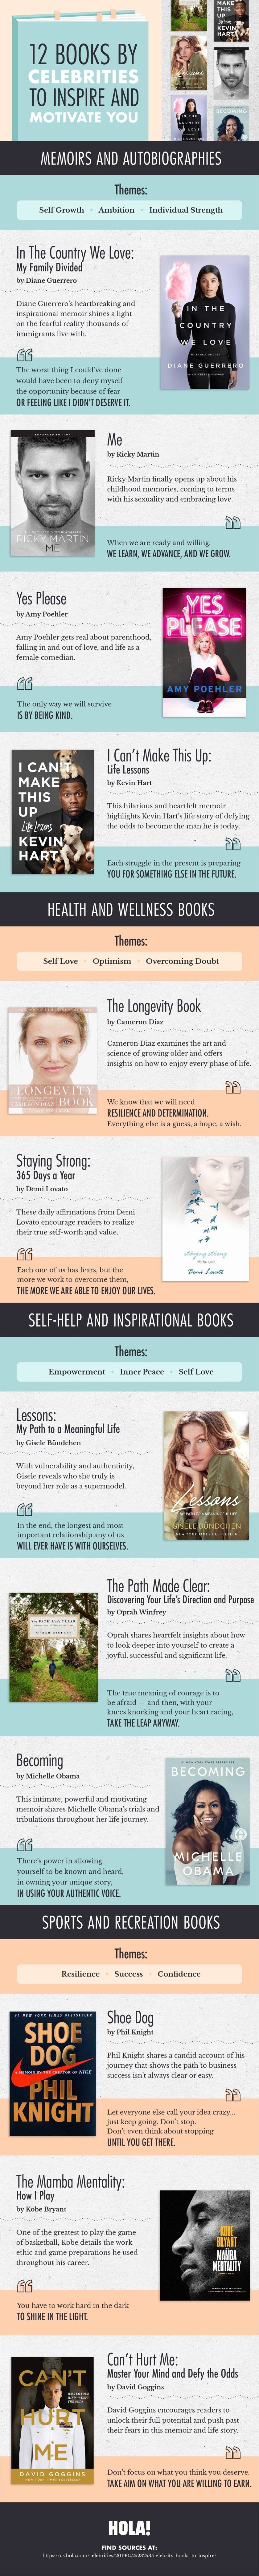 Popular books by celebrities to inspire and motivate you - infographic